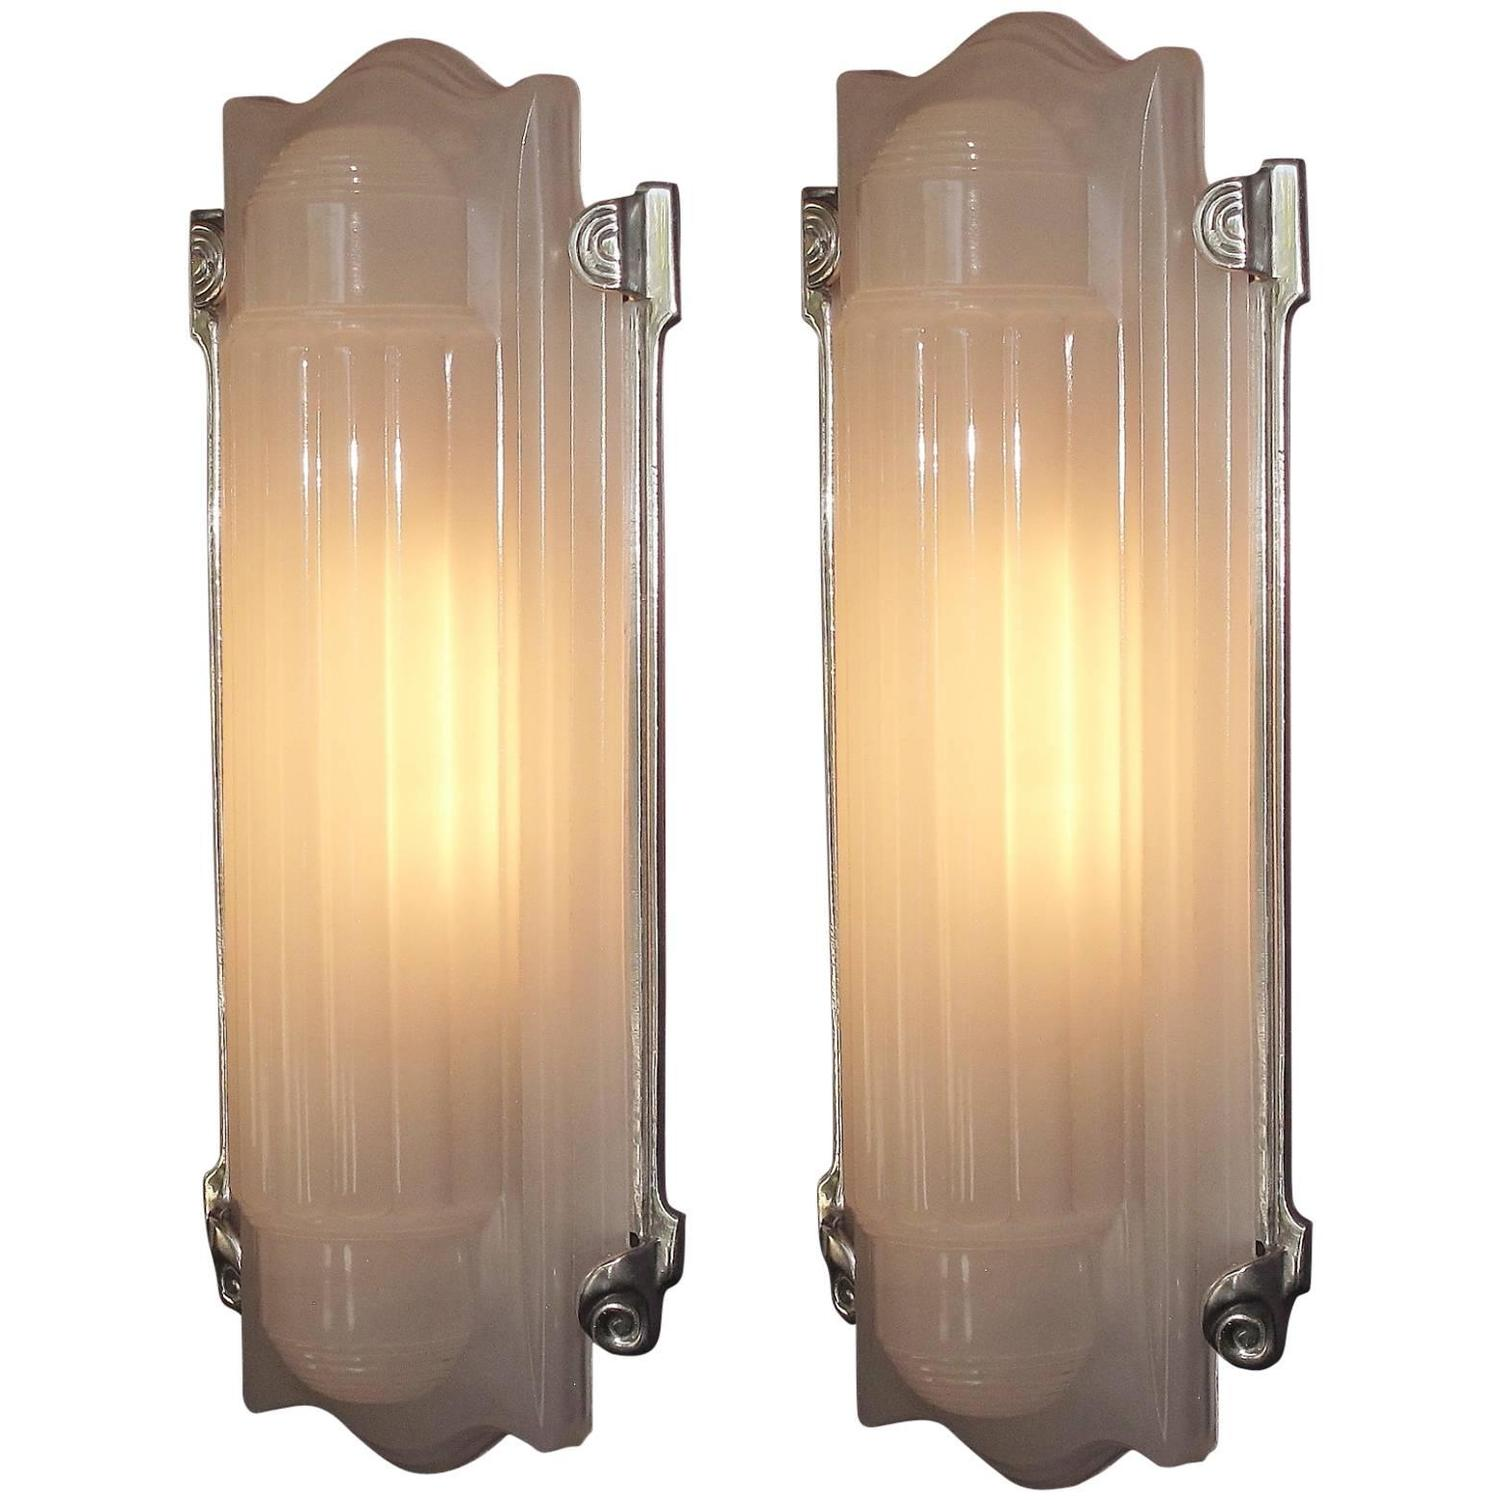 Wall Sconces Home Theater : Large Elegant Art Deco Wall Sconces Home Theater at 1stdibs